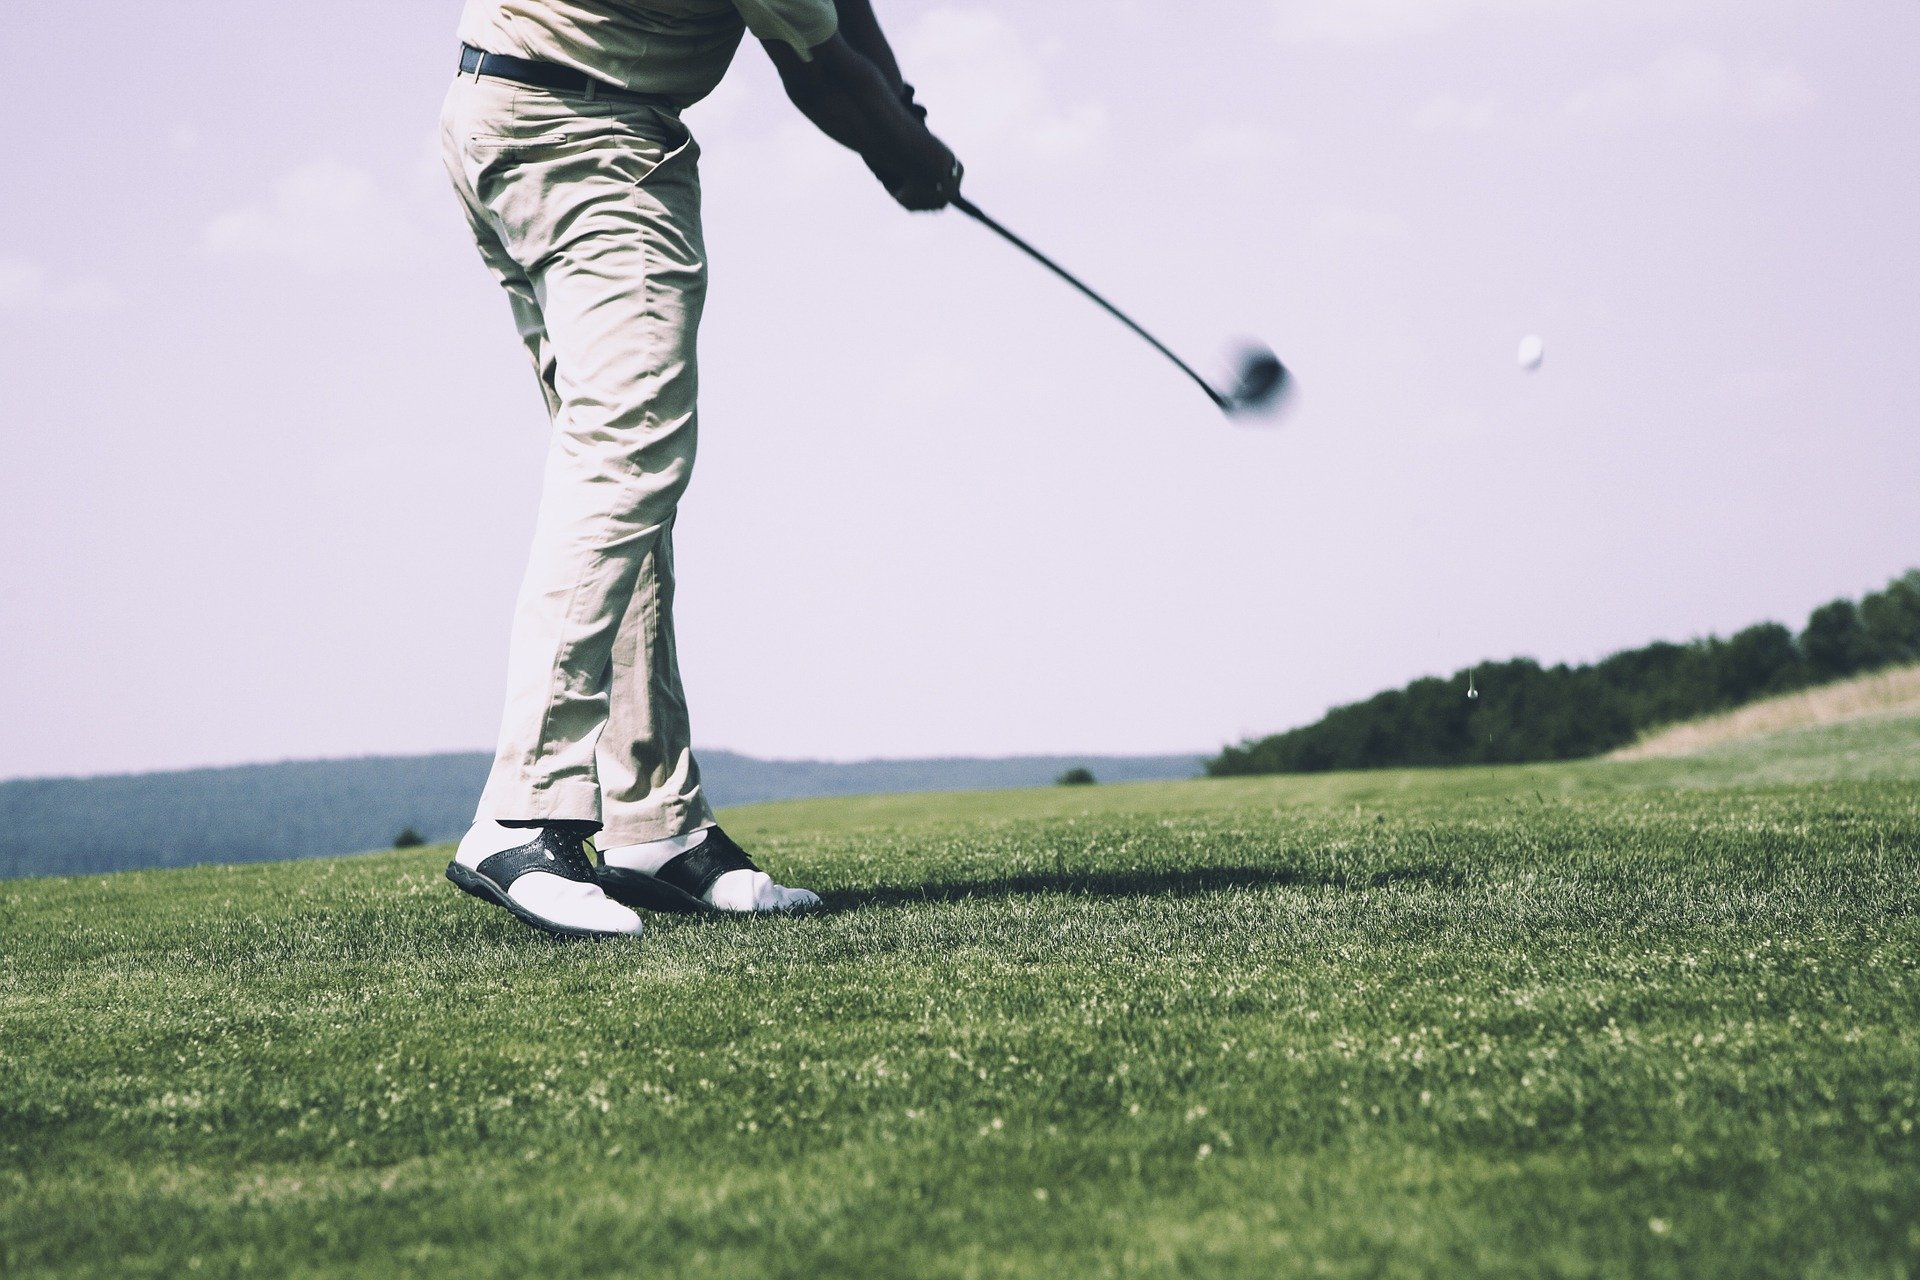 Socially distanced sports…golf or tennis anyone? Beware of injury